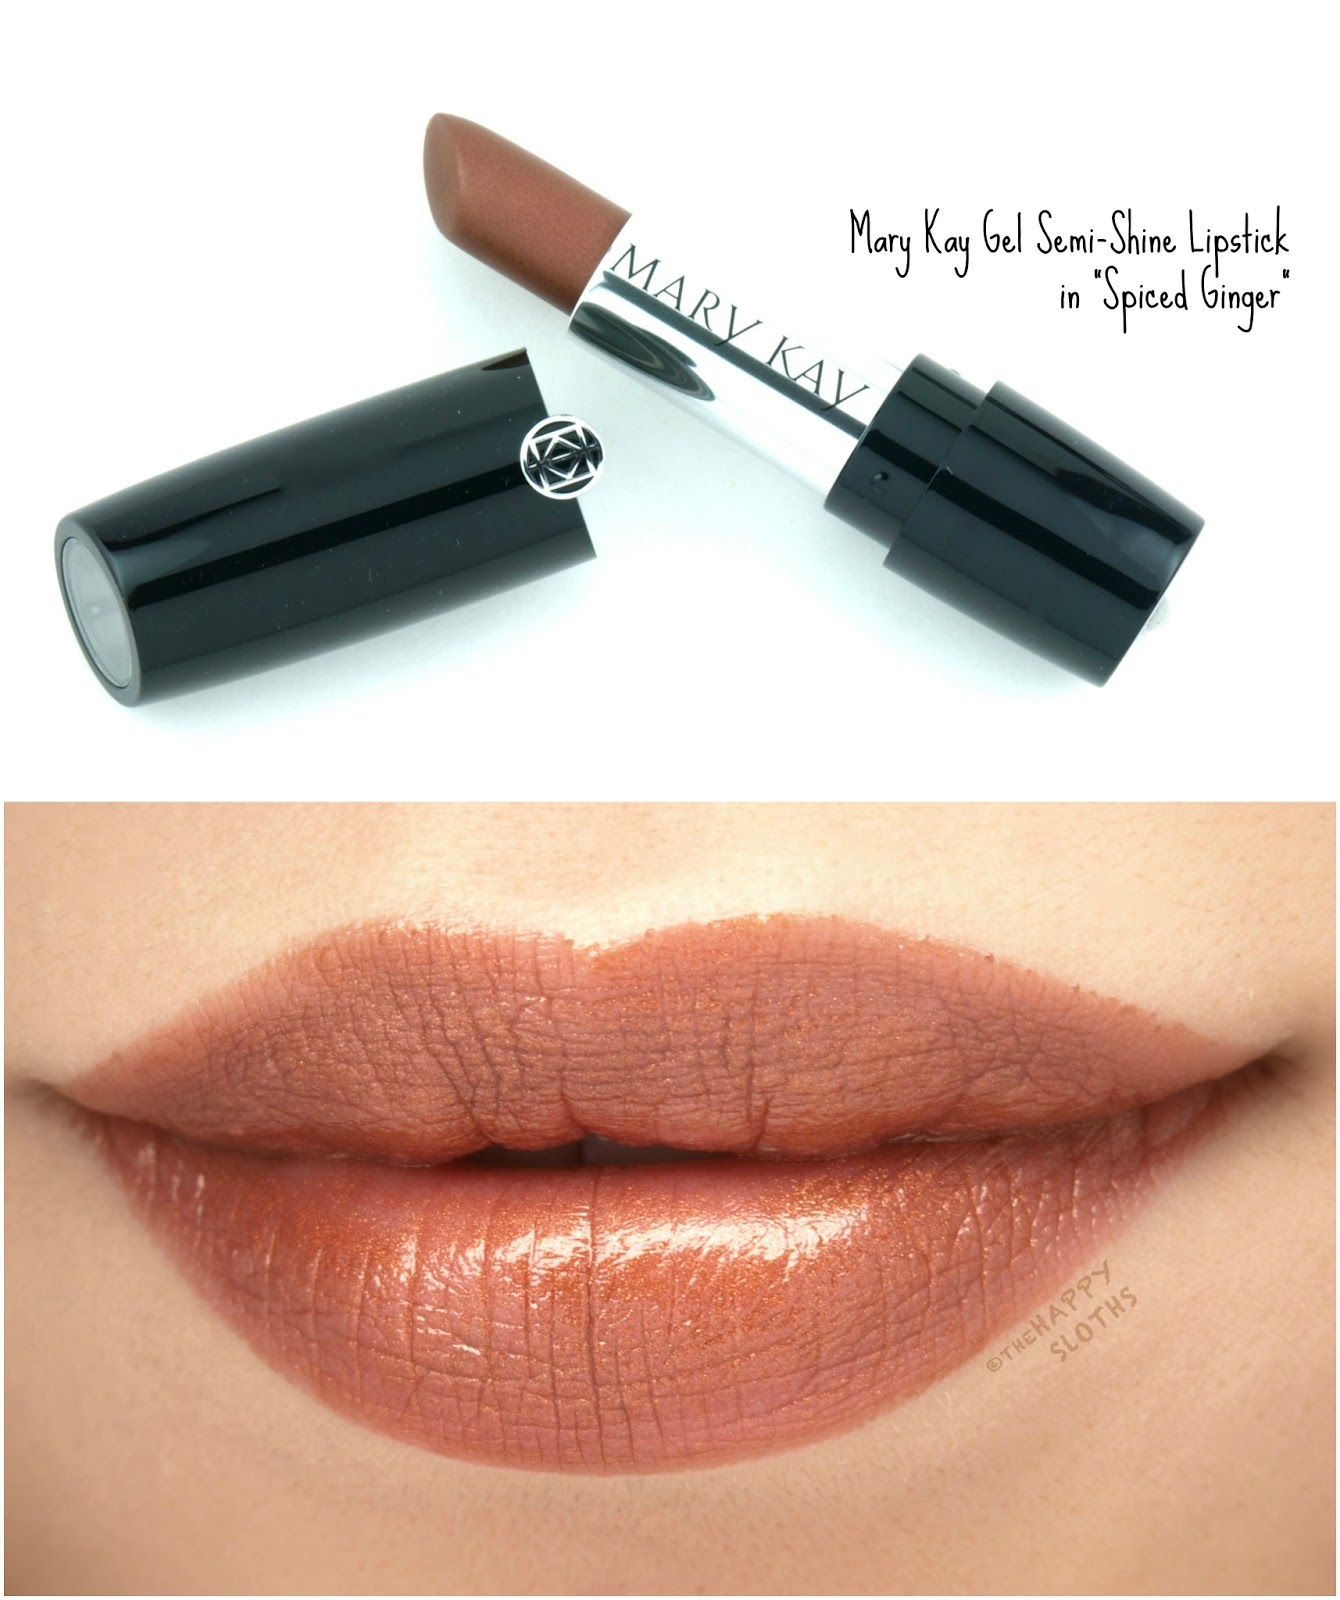 "Mary Kay Gel Semi-Shine Lipstick in ""Spiced Ginger"": Review and Swatches"